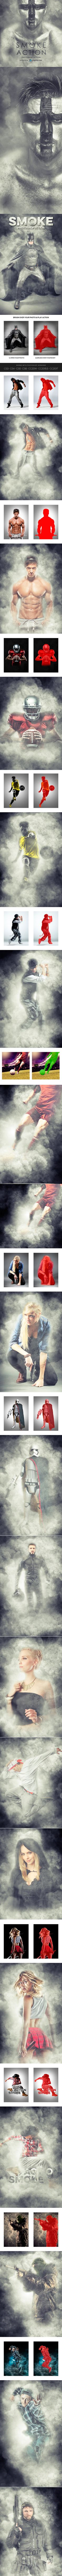 Smoke Photoshop Action - Photo Effects Actions